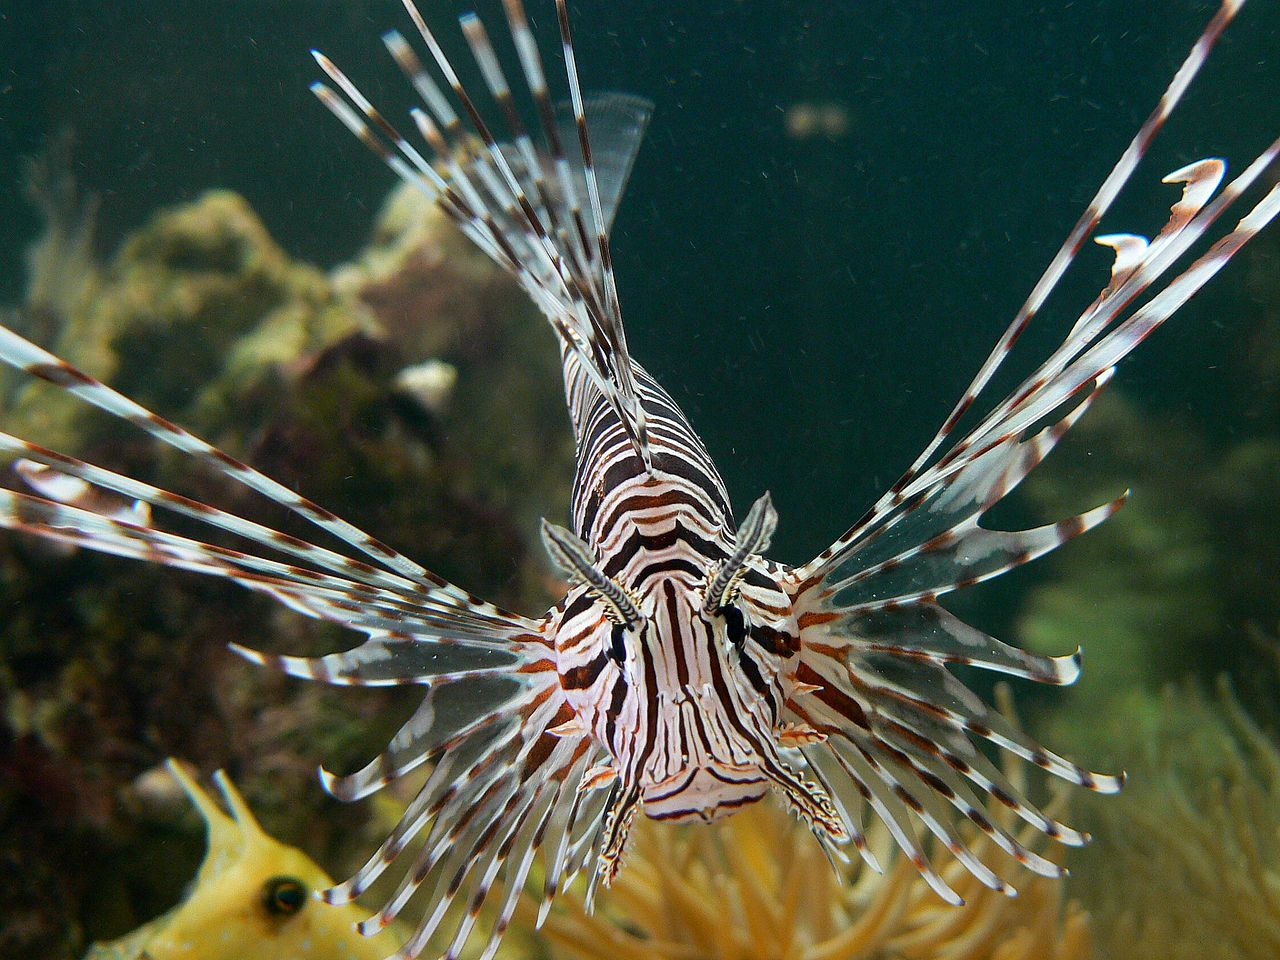 Lionfish at the Niagara Falls Aviary